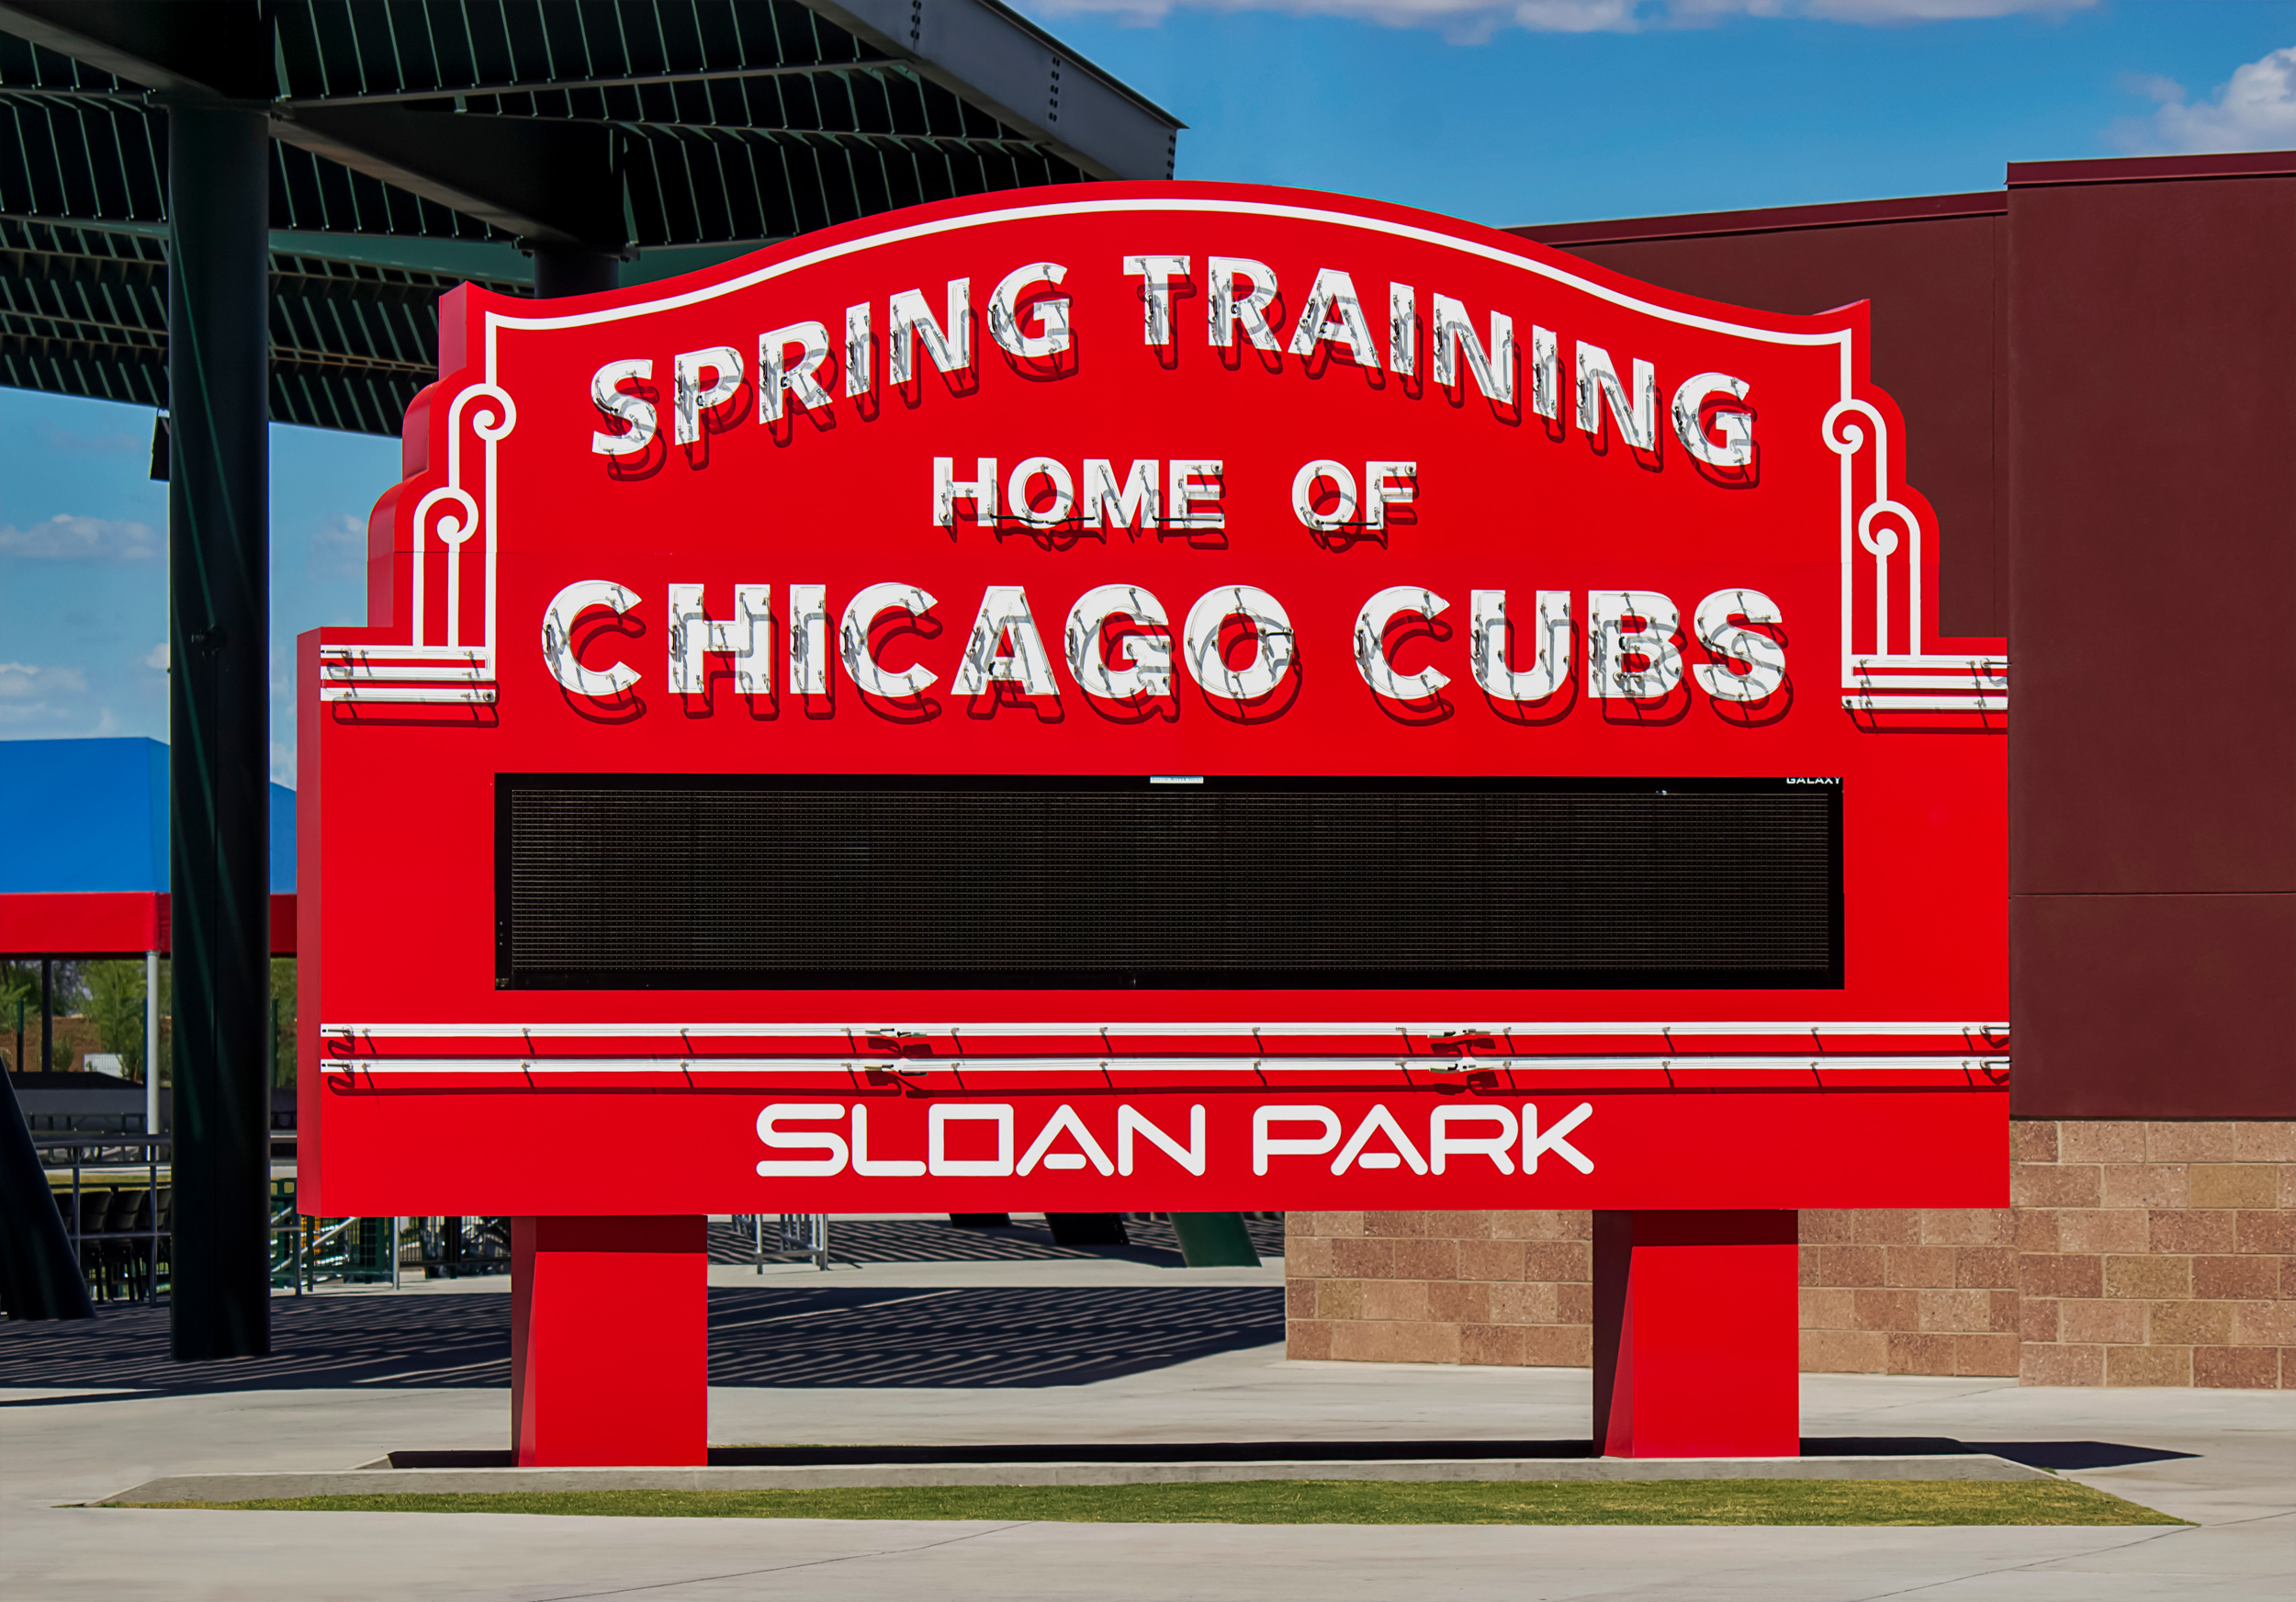 A freestanding replica of the iconic Wrigley Field sign is installed at Sloan Park. The sign is complete with exposed skeleton neon and an electronic message center.